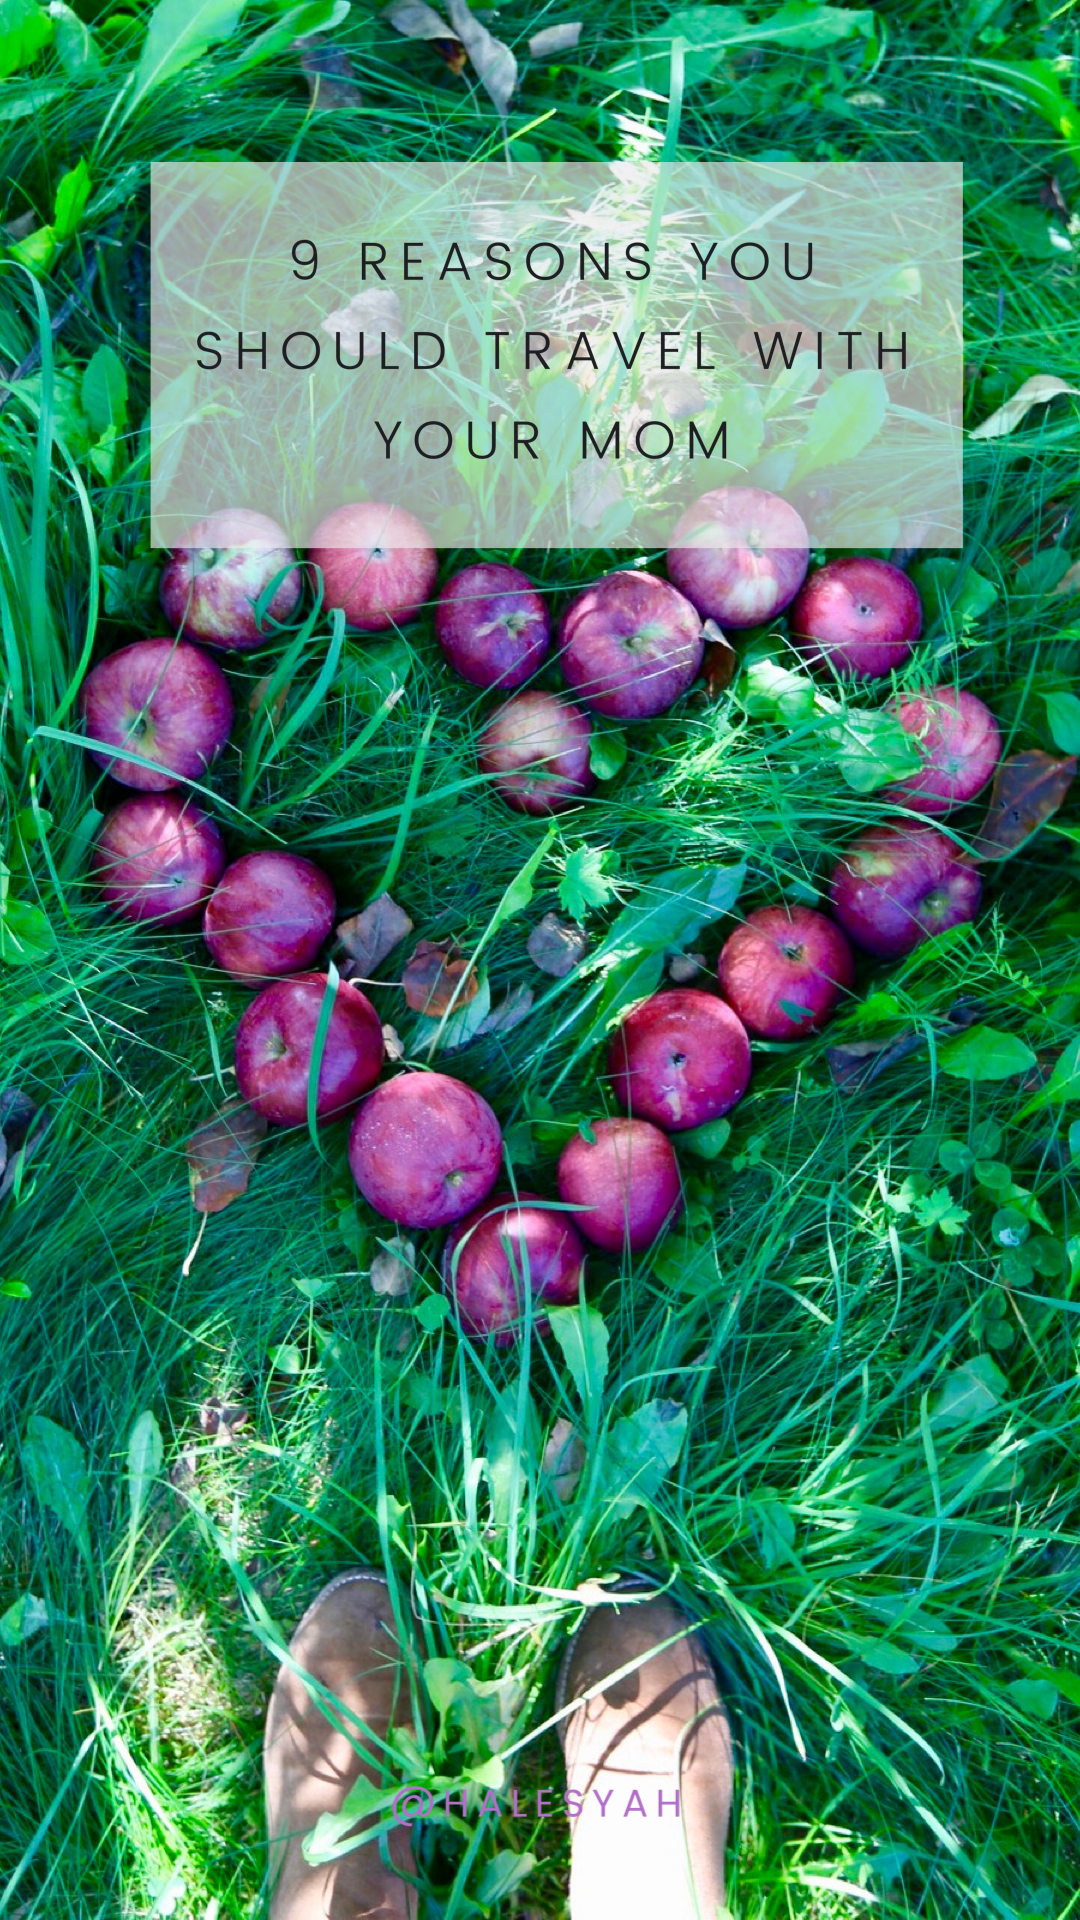 Halesyah: 9 Reasons You Should Travel with Your Mom